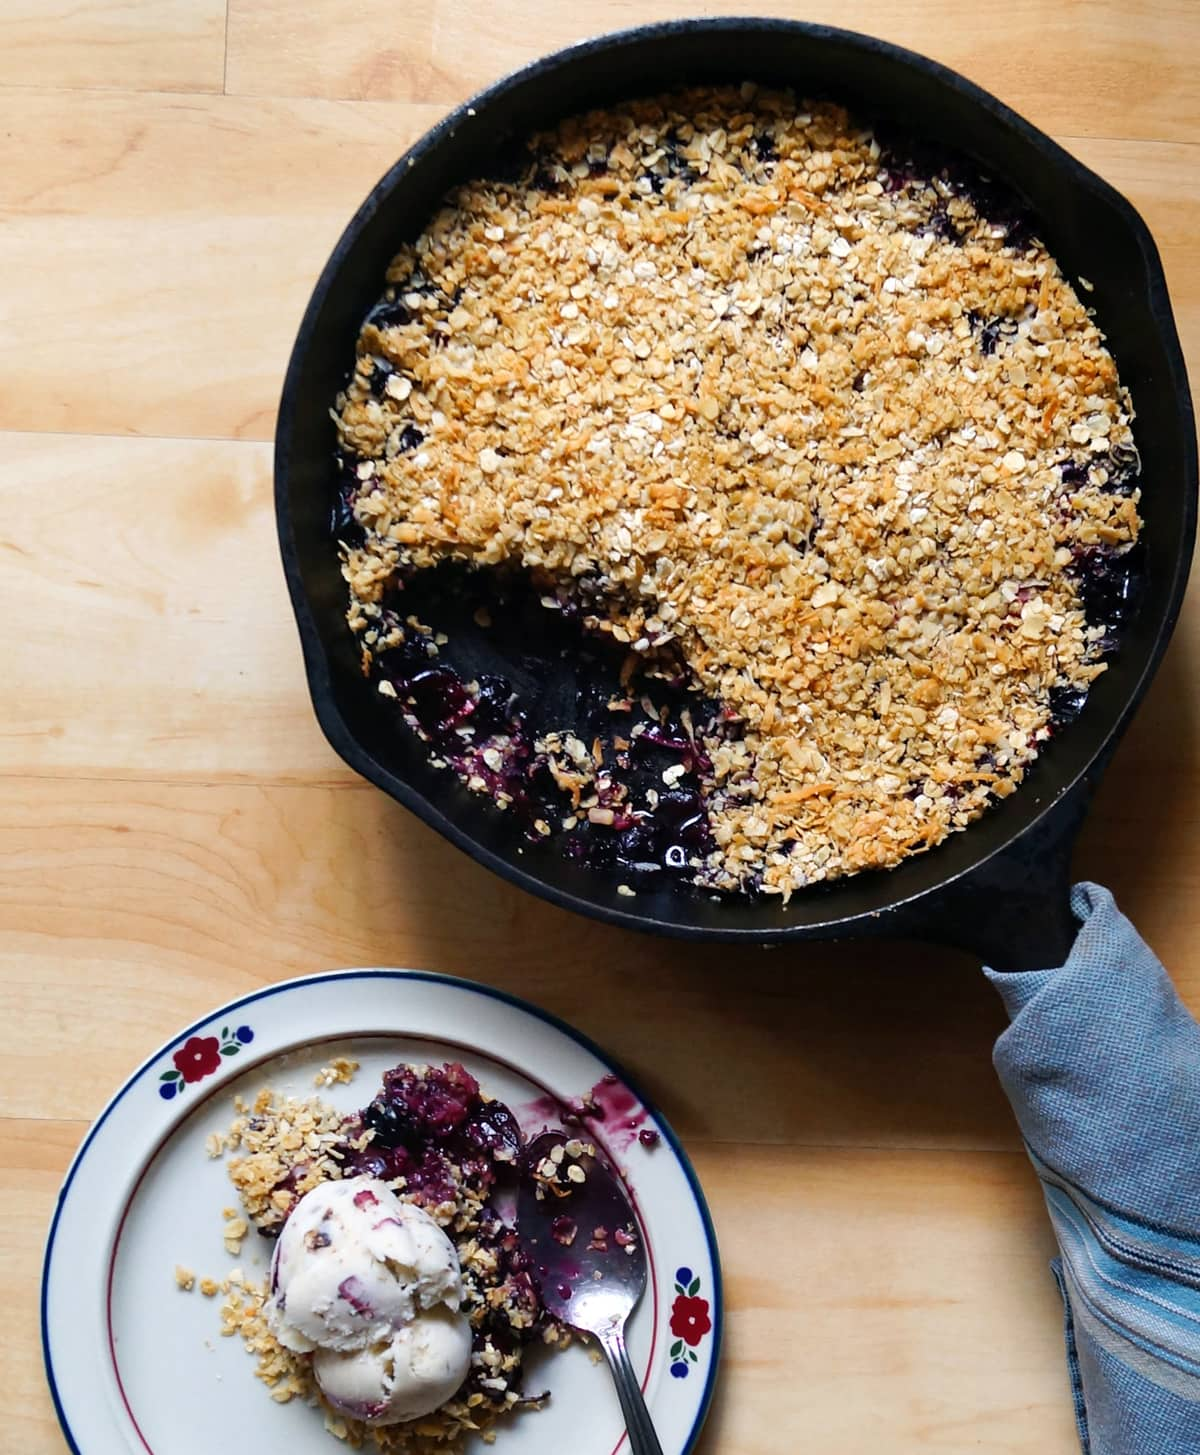 A cast iron skillet filled with the finished cherry and berry crumble beside a small plate with the berry crumble served with ice cream.